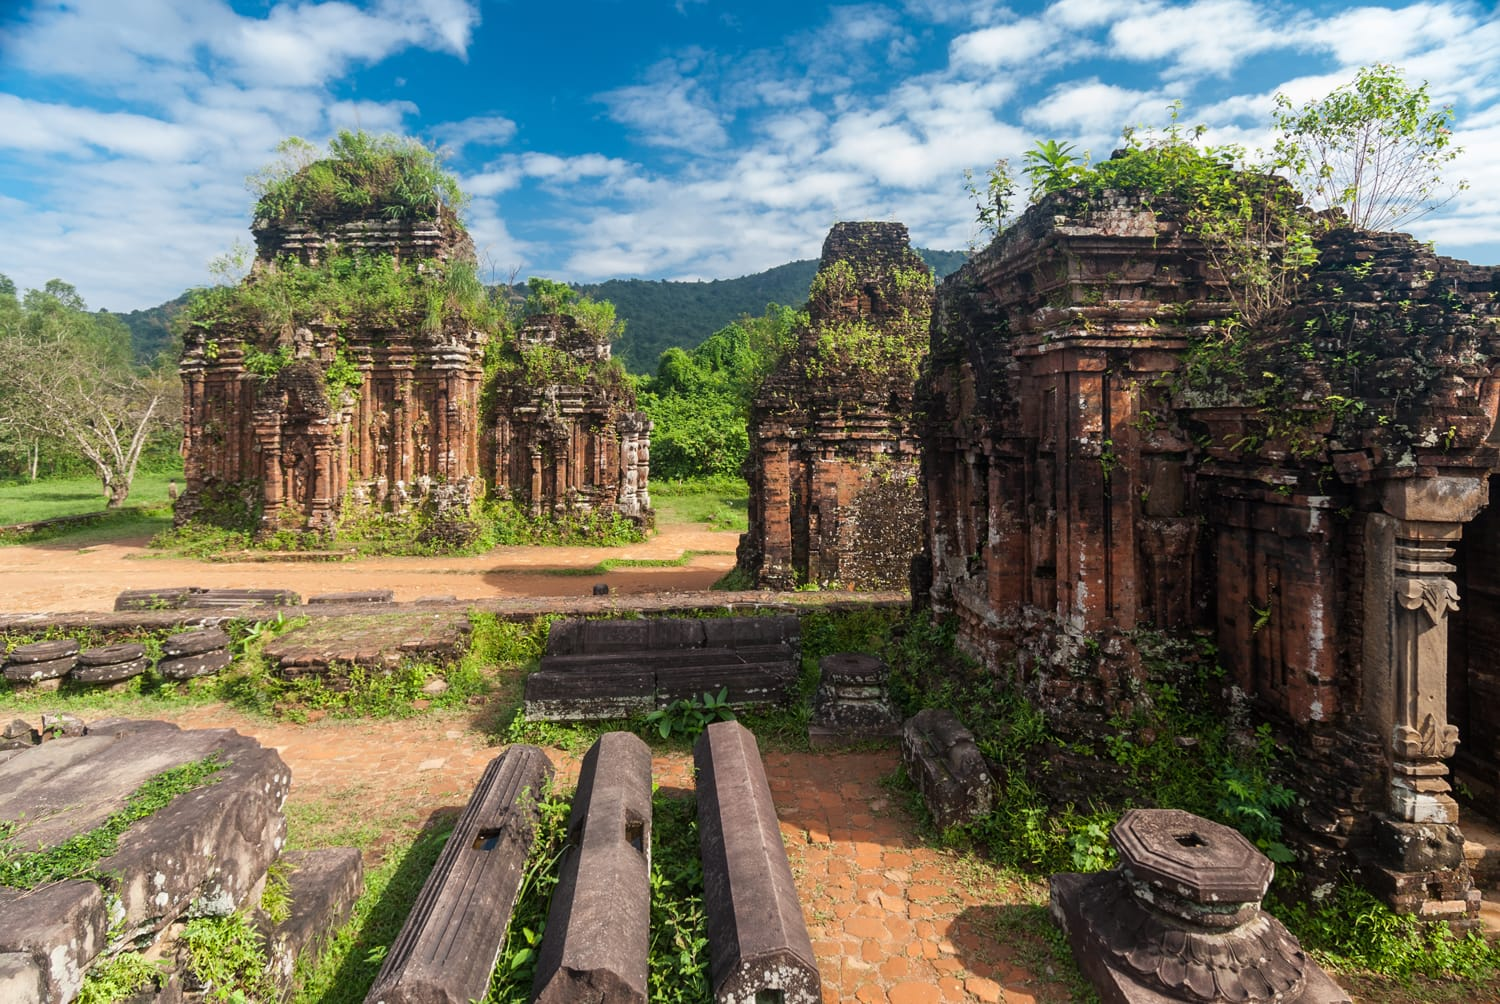 Remains of Hindu tower-temples at My Son Sanctuary, a UNESCO World Heritage site in Vietnam